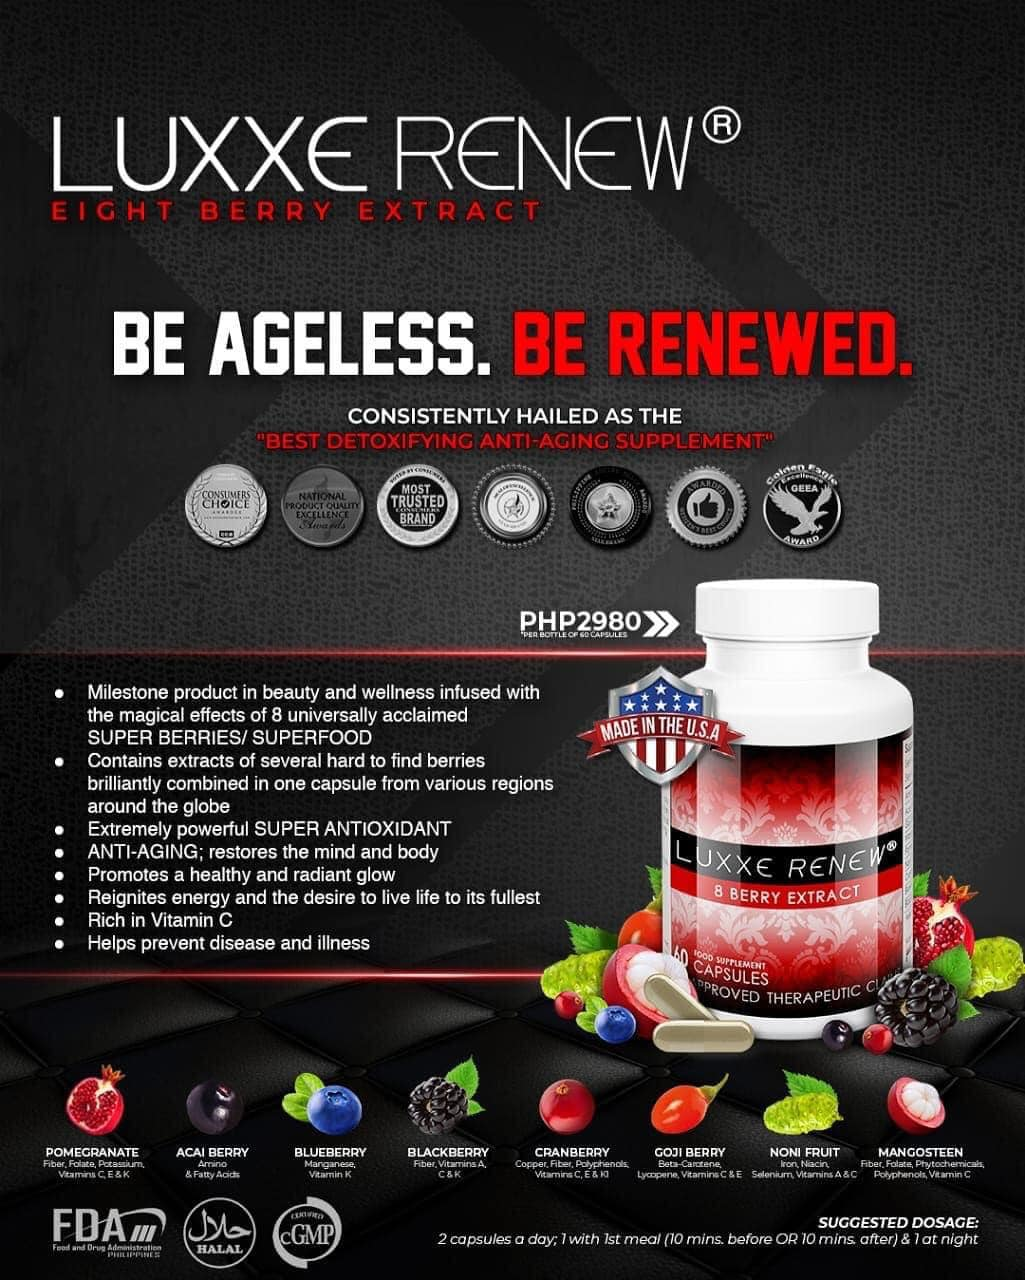 Luxxe Renew Best Detoxifying Anti-Aging Supplement